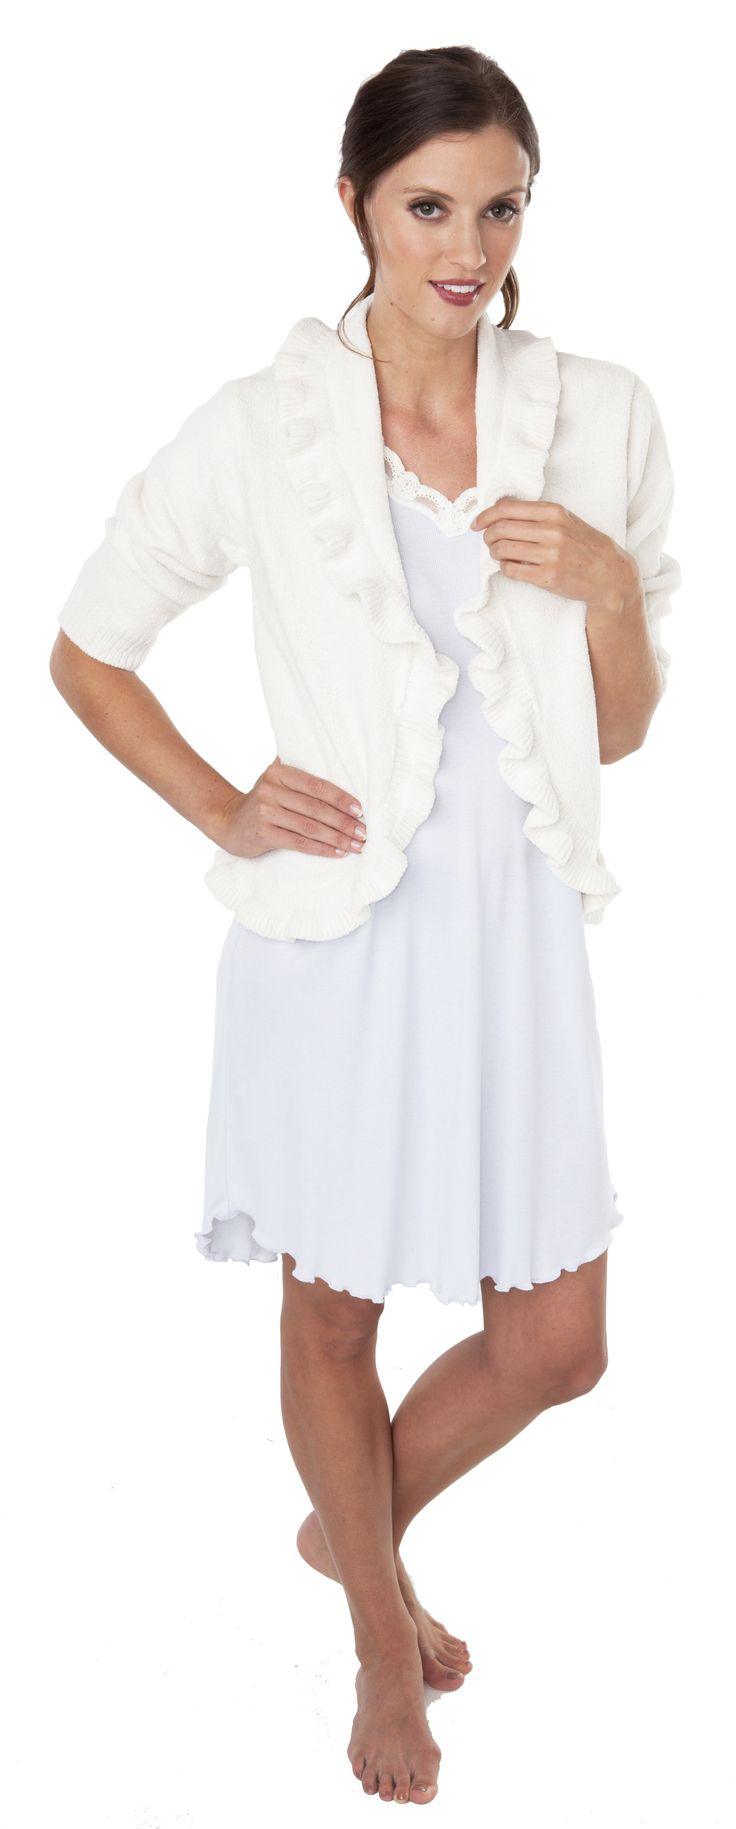 18 Best Images About Bed Jackets For Women On Pinterest